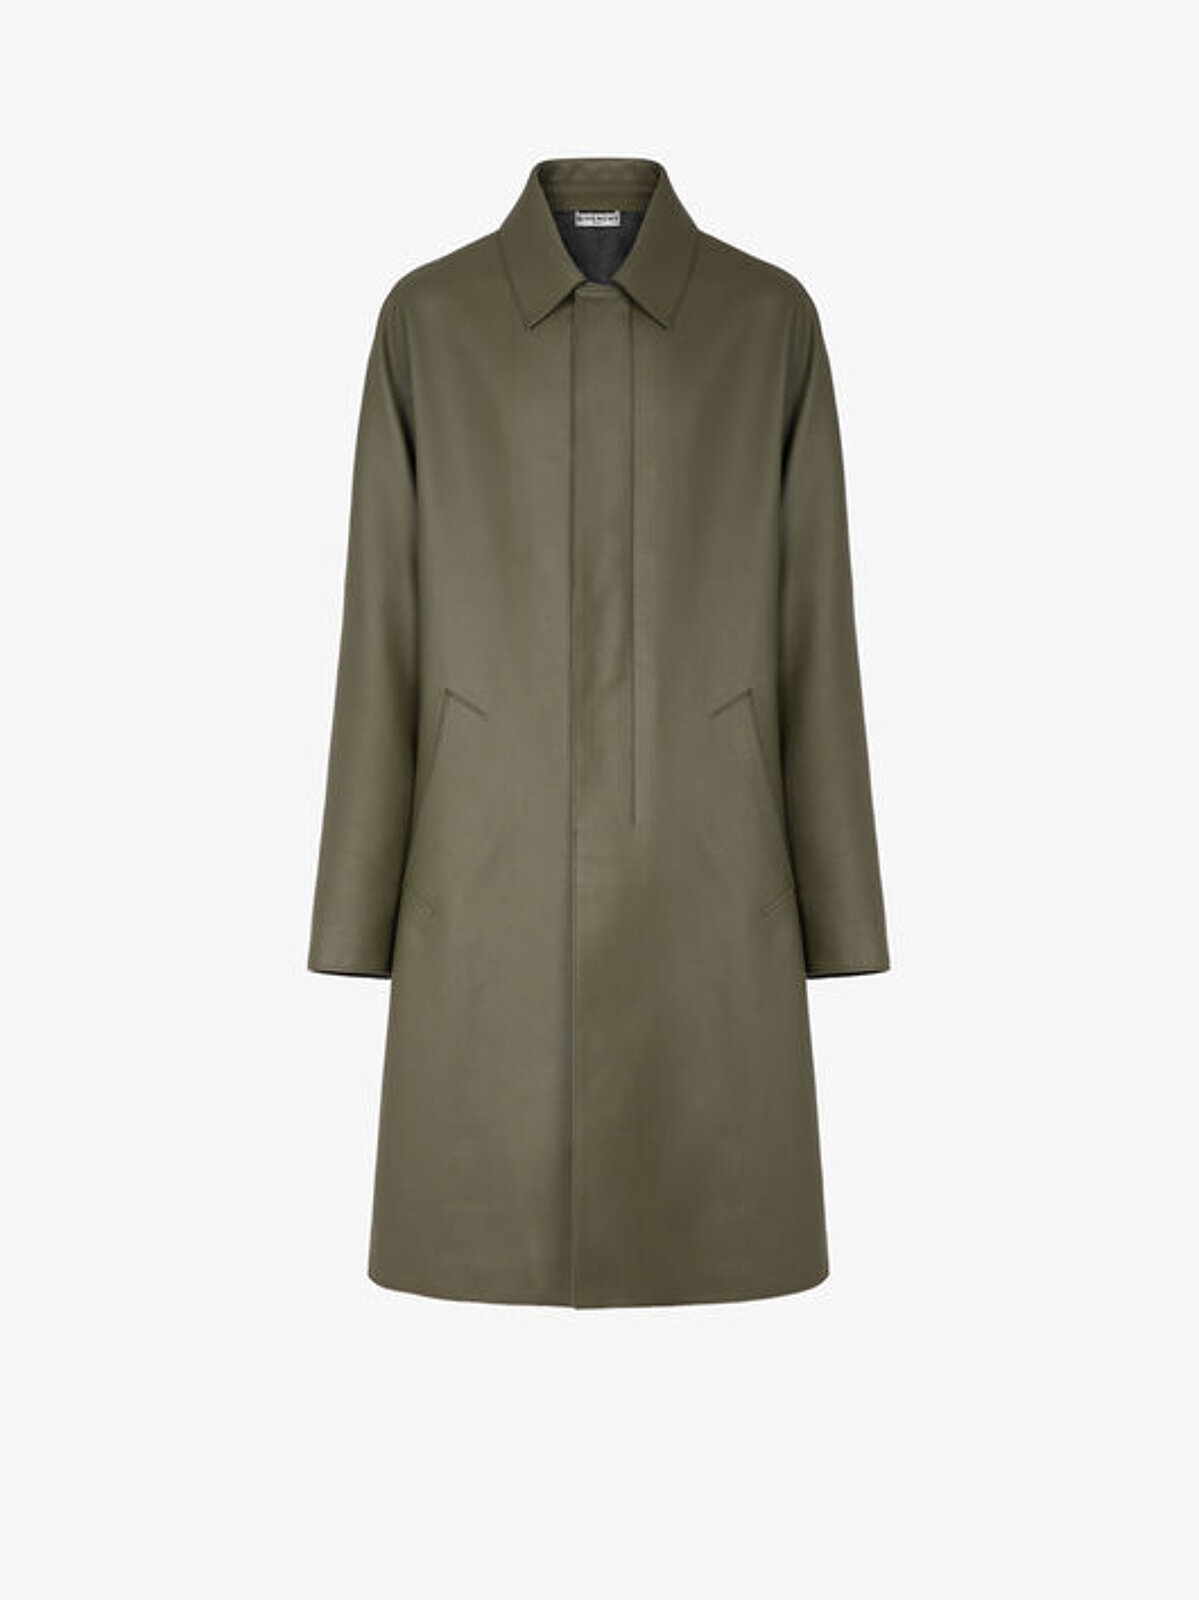 GIVENCHY coat in leather - Givenchy